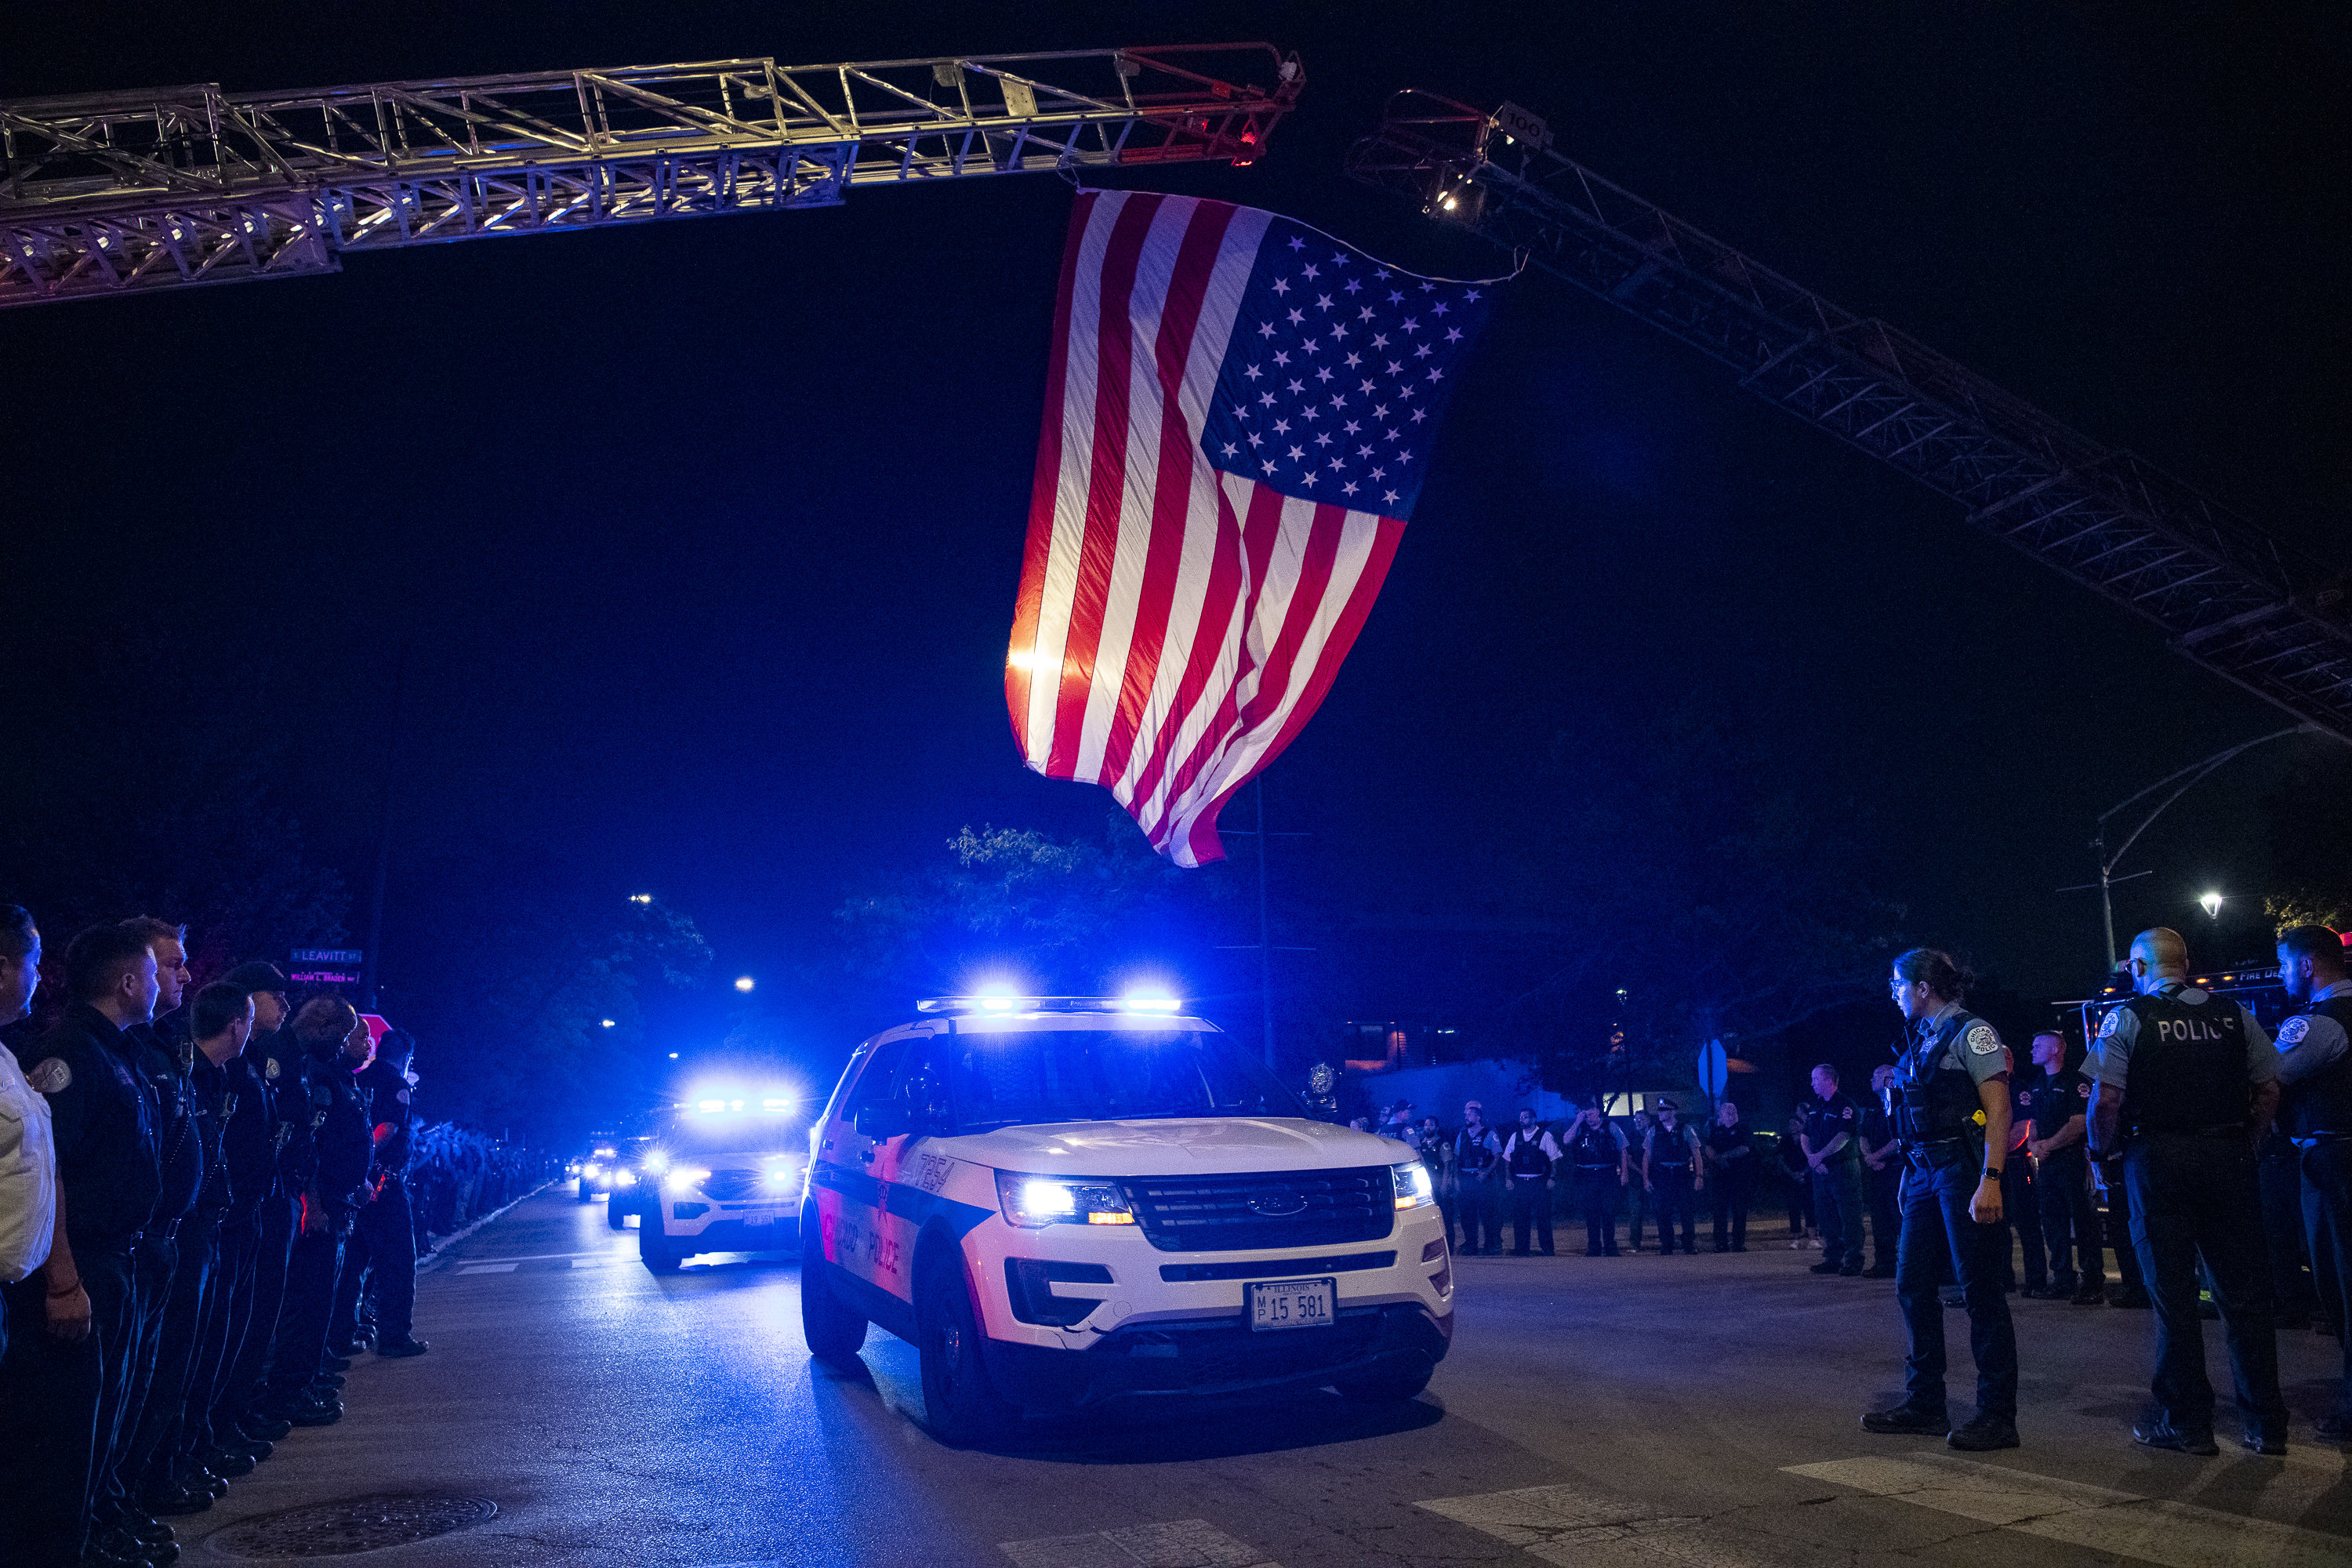 A Chicago police procession drives by the Cook County Medical Examiner's Office early Sunday morning, Aug. 8, 2021. The procession was in honor of Officer Ella French, who was shot and killed during a traffic stop in West Englewood Saturday night.